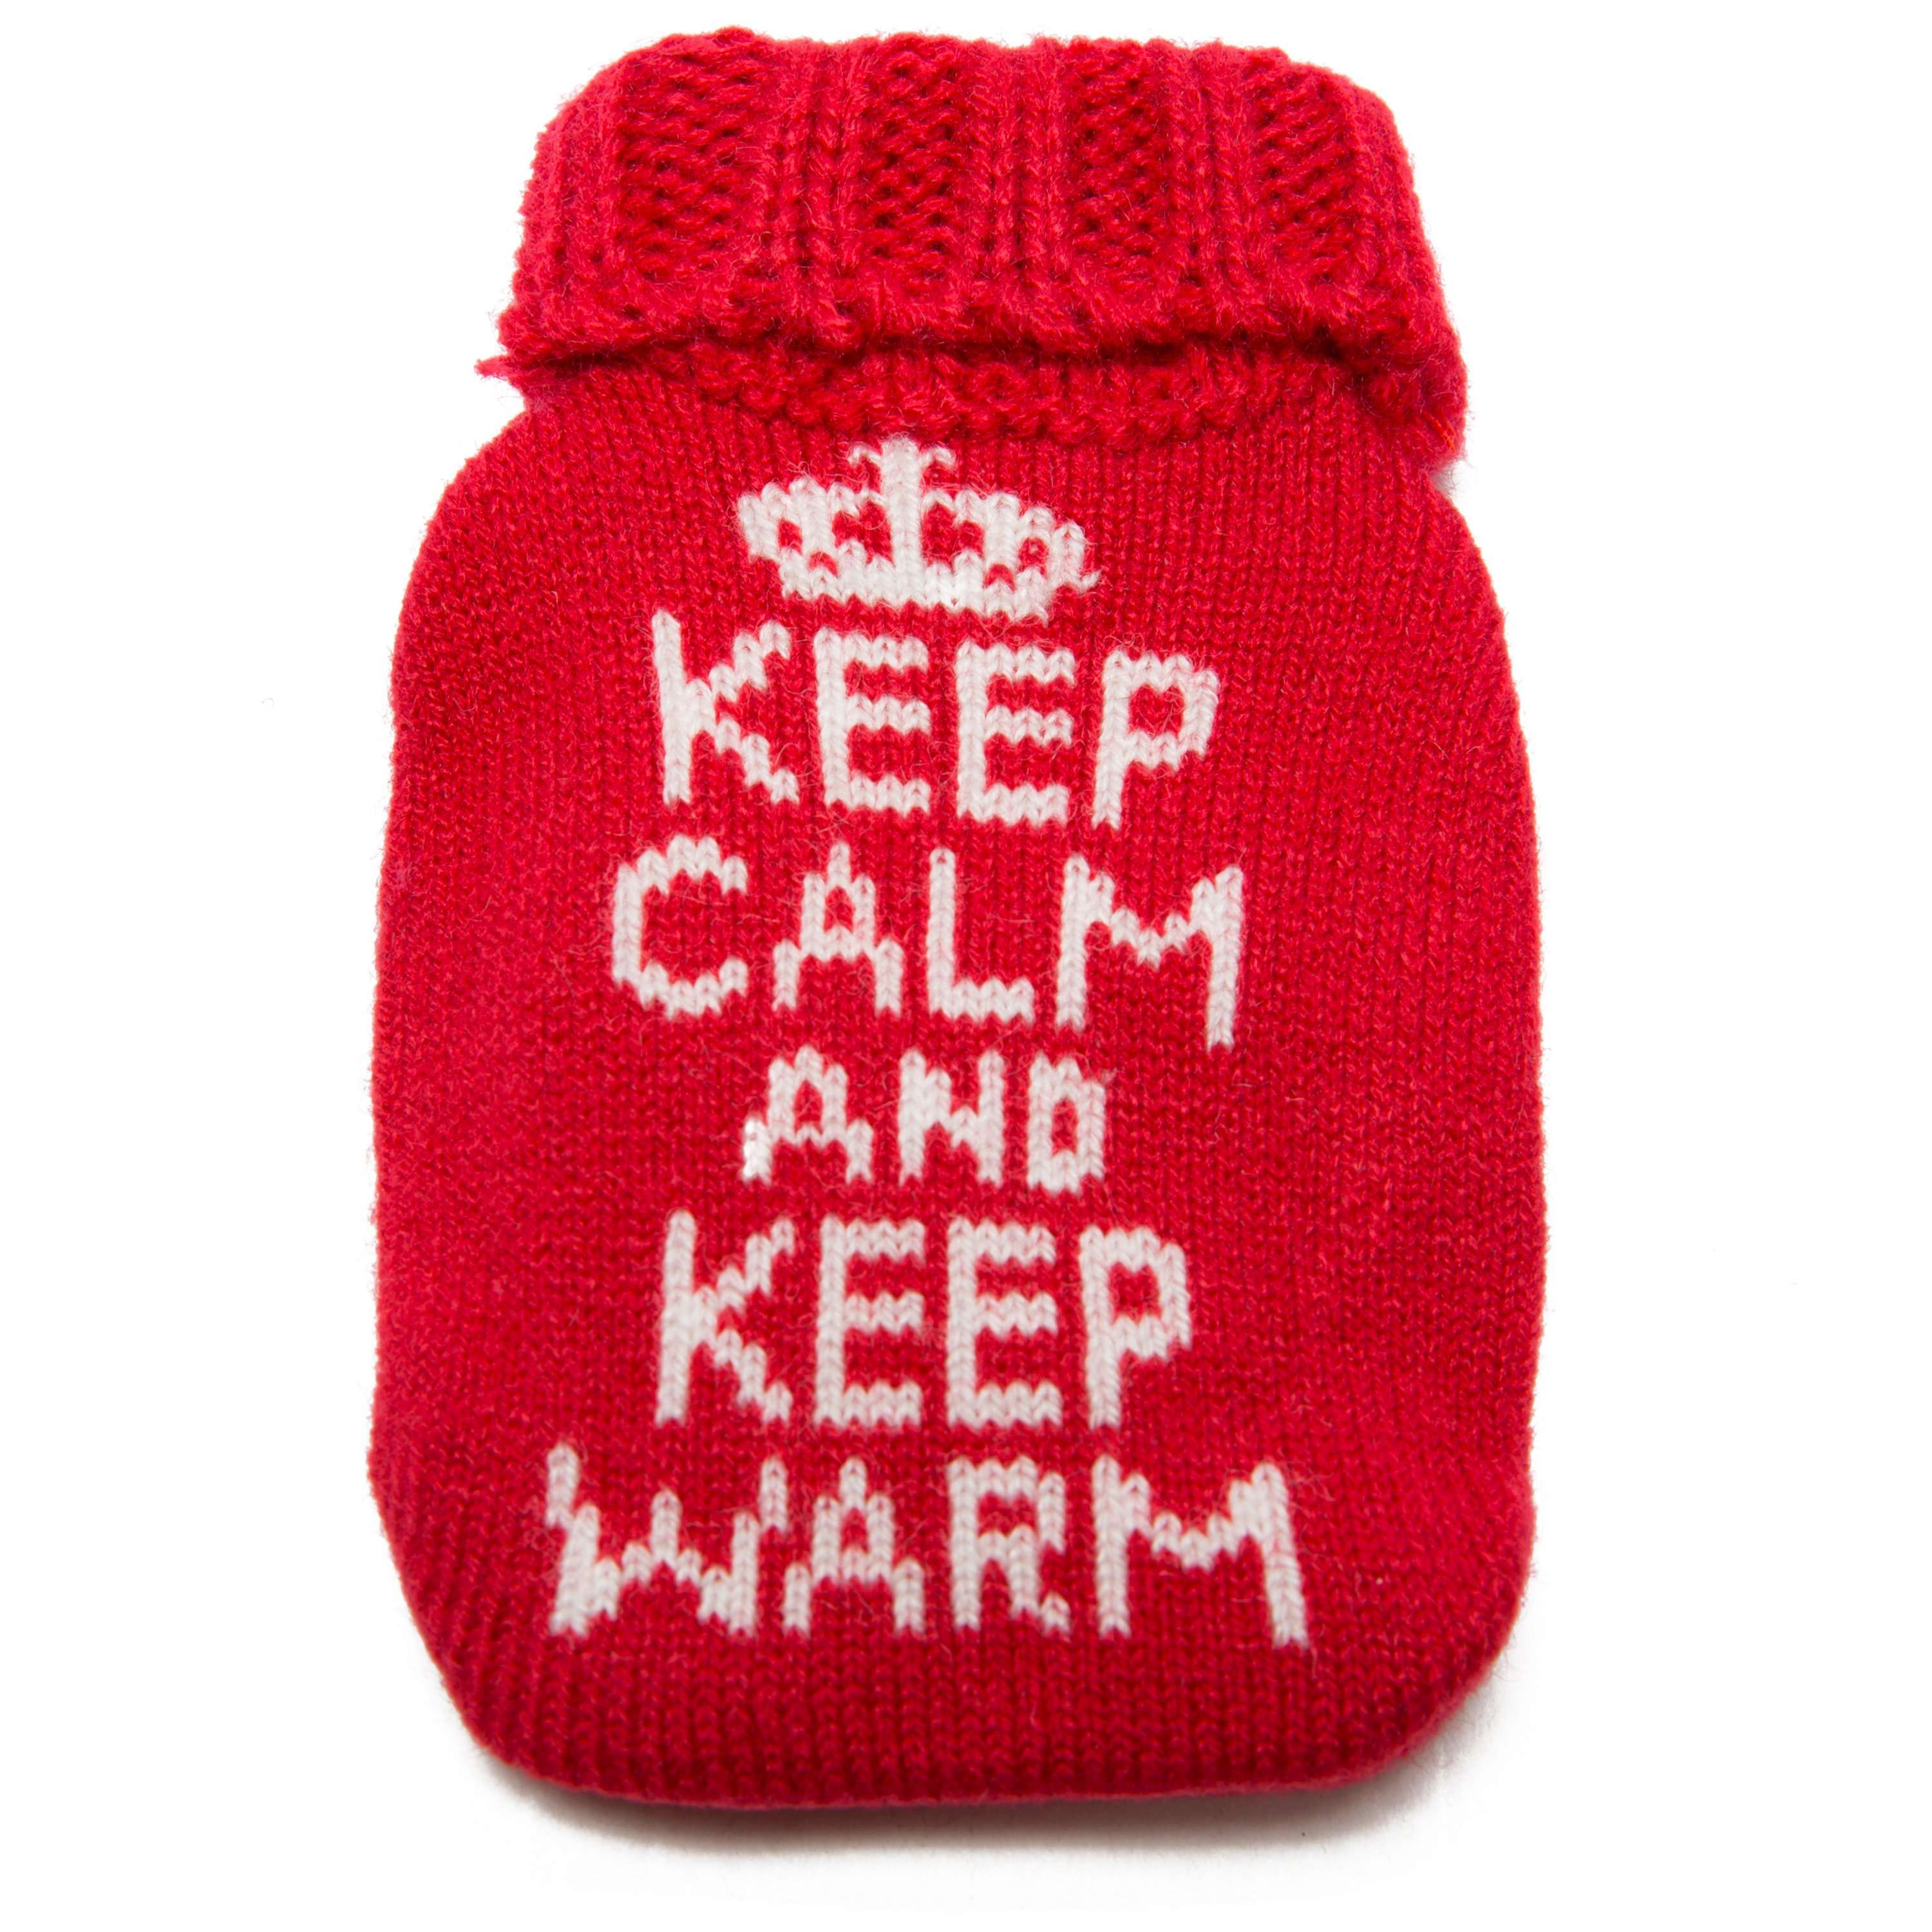 SUMMIT Reusable Knitted Cover Heat Pack